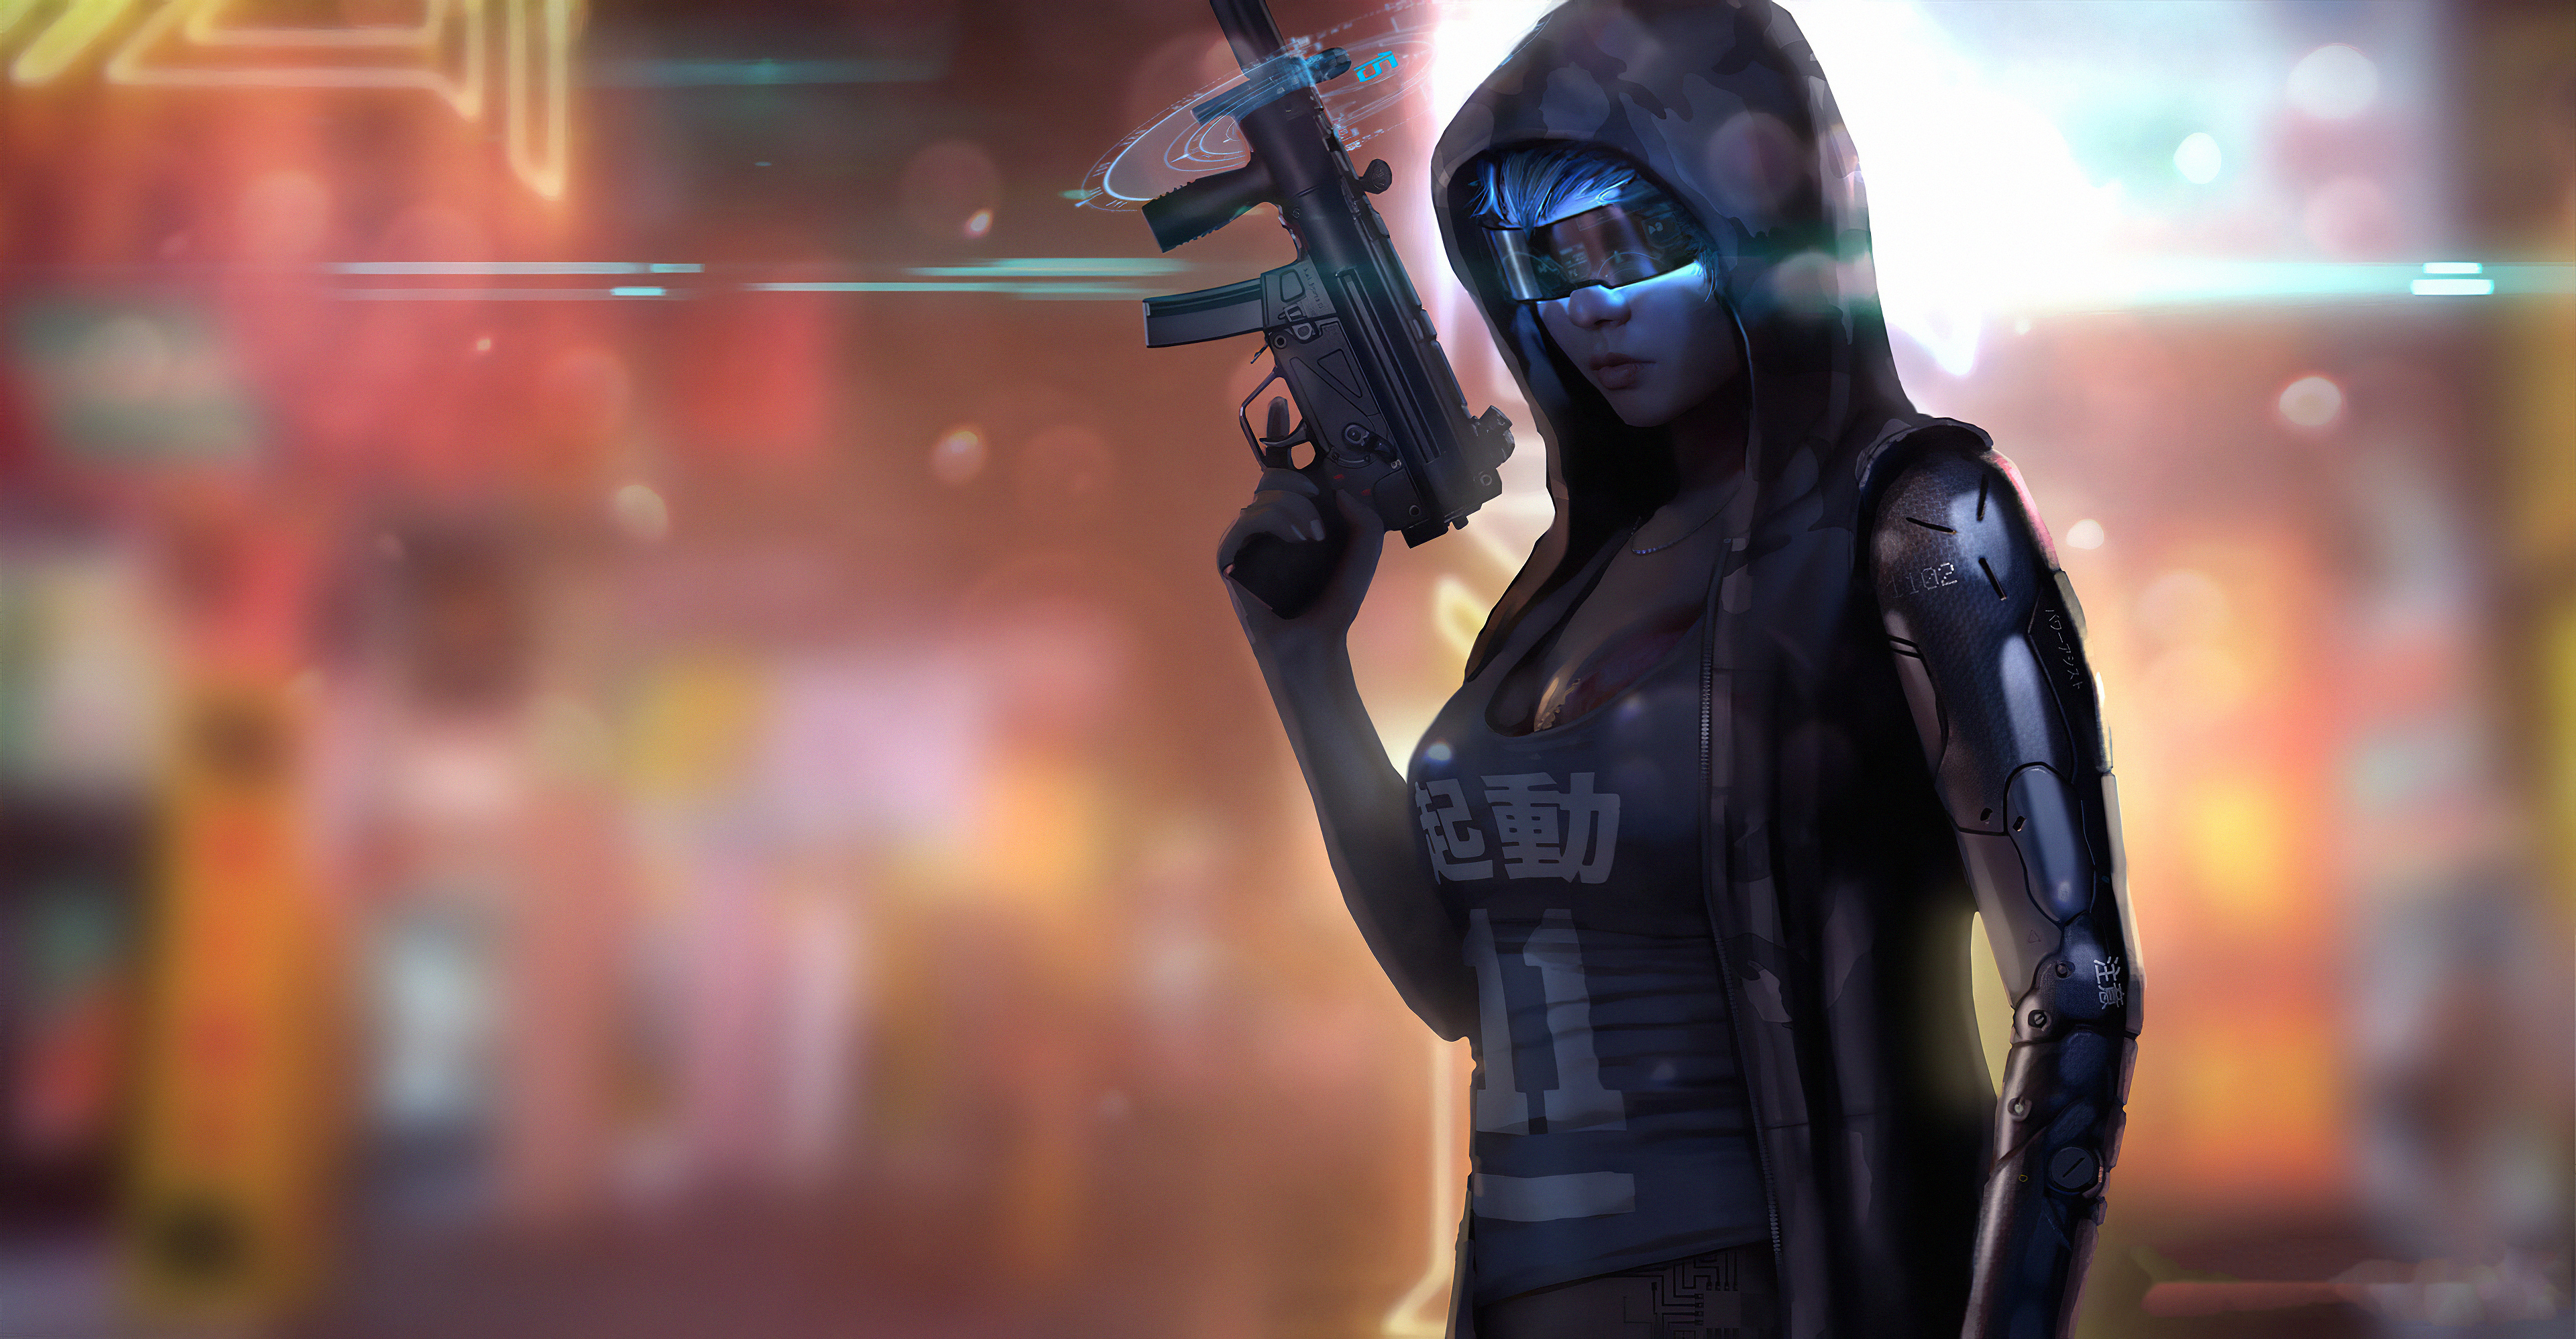 Cyberpunk Girl Gun 4k Hd Artist 4k Wallpapers Images Backgrounds Photos And Pictures